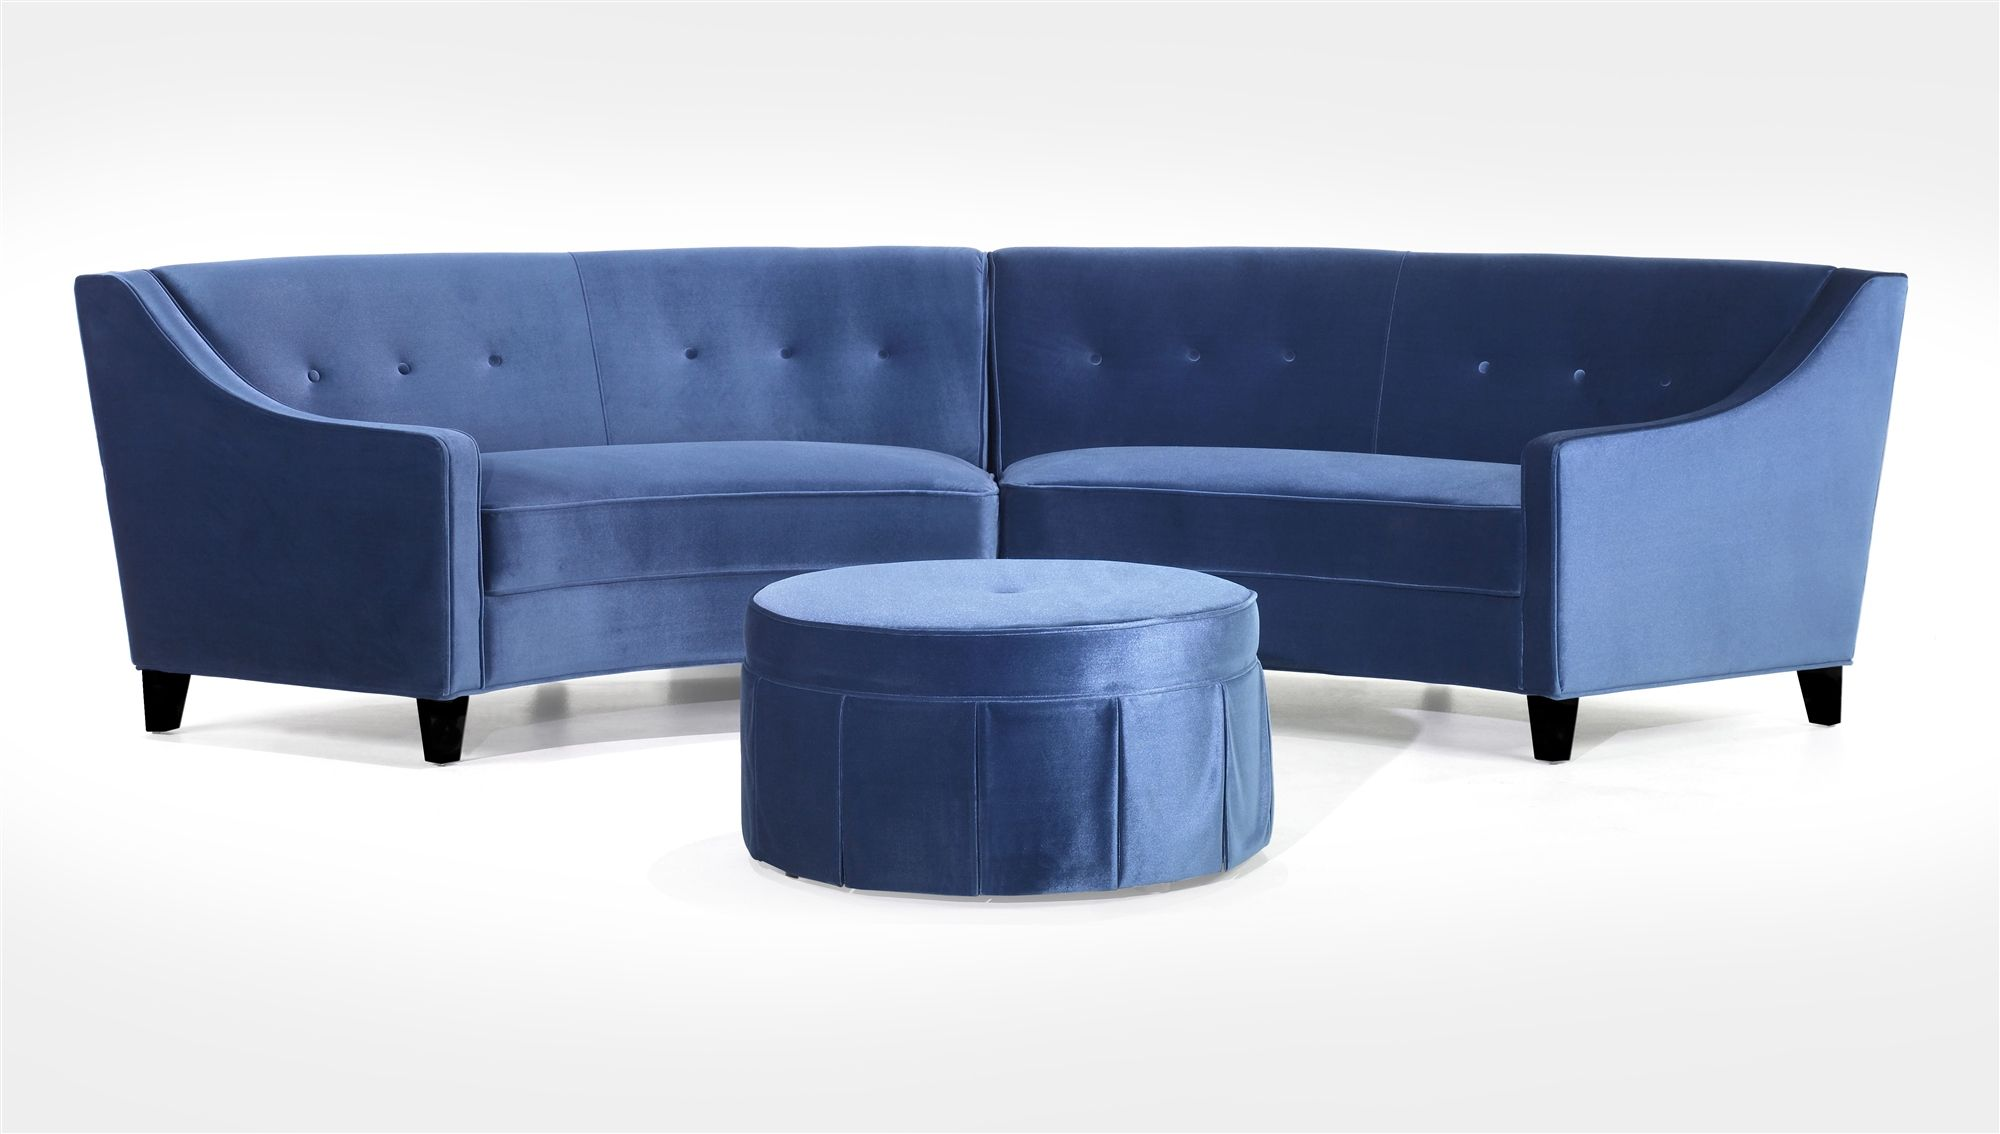 Picture of armen living bel aire curved blue velvet sectional sofa w round ottoman 723 aart lc722bu set contemporary seating